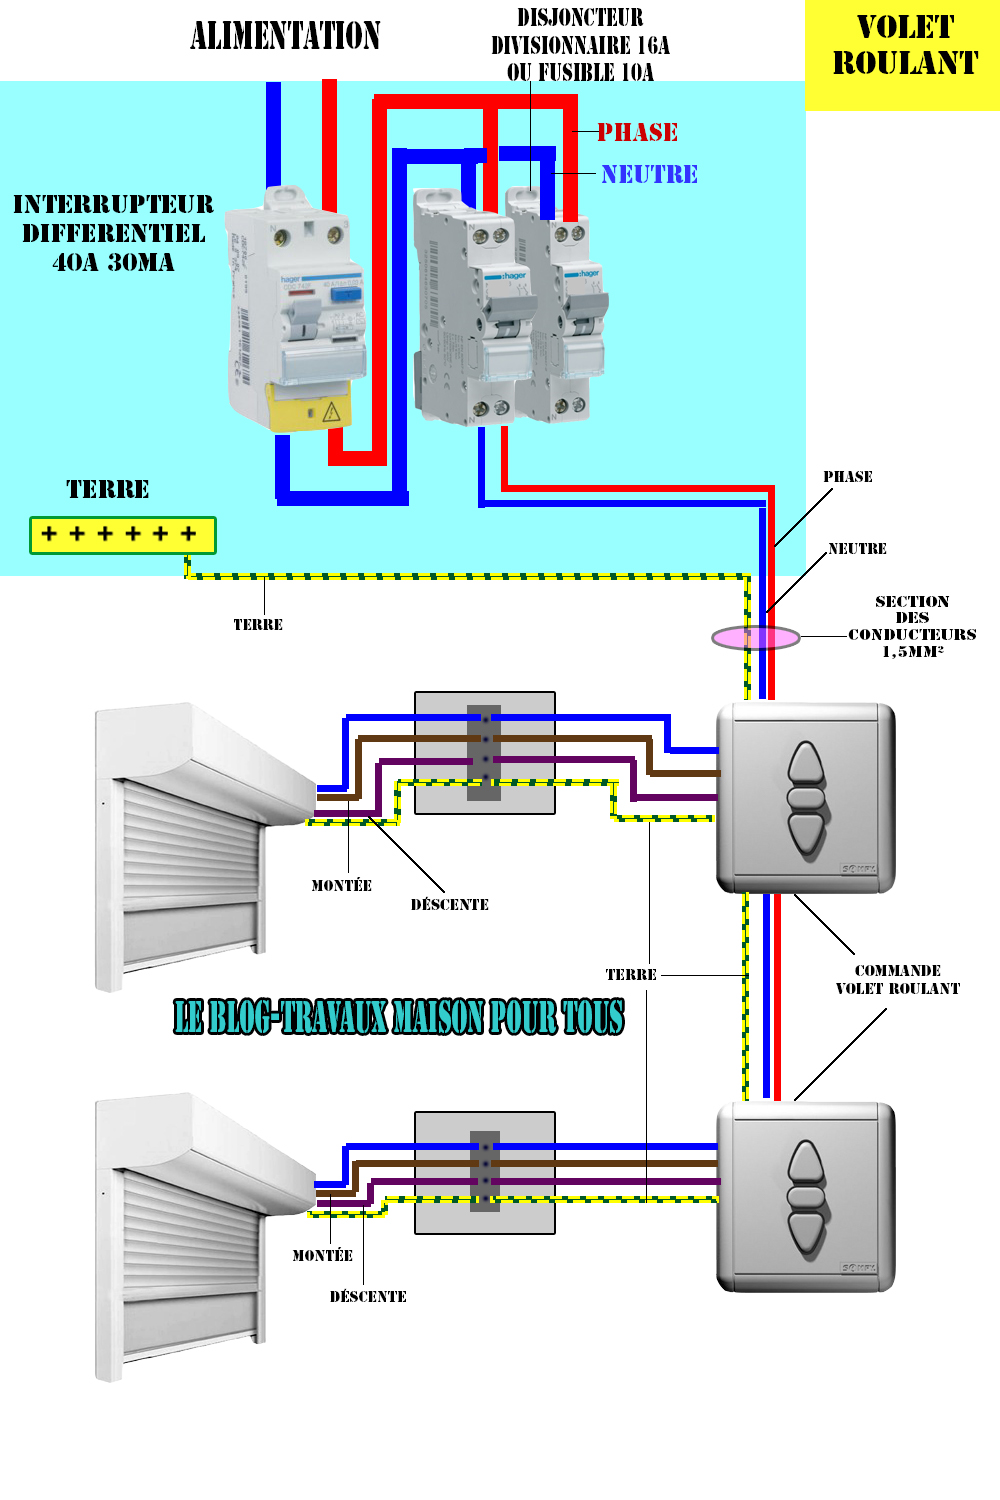 Schema Electrique Du Volet Roulant on alarm circuit schematic